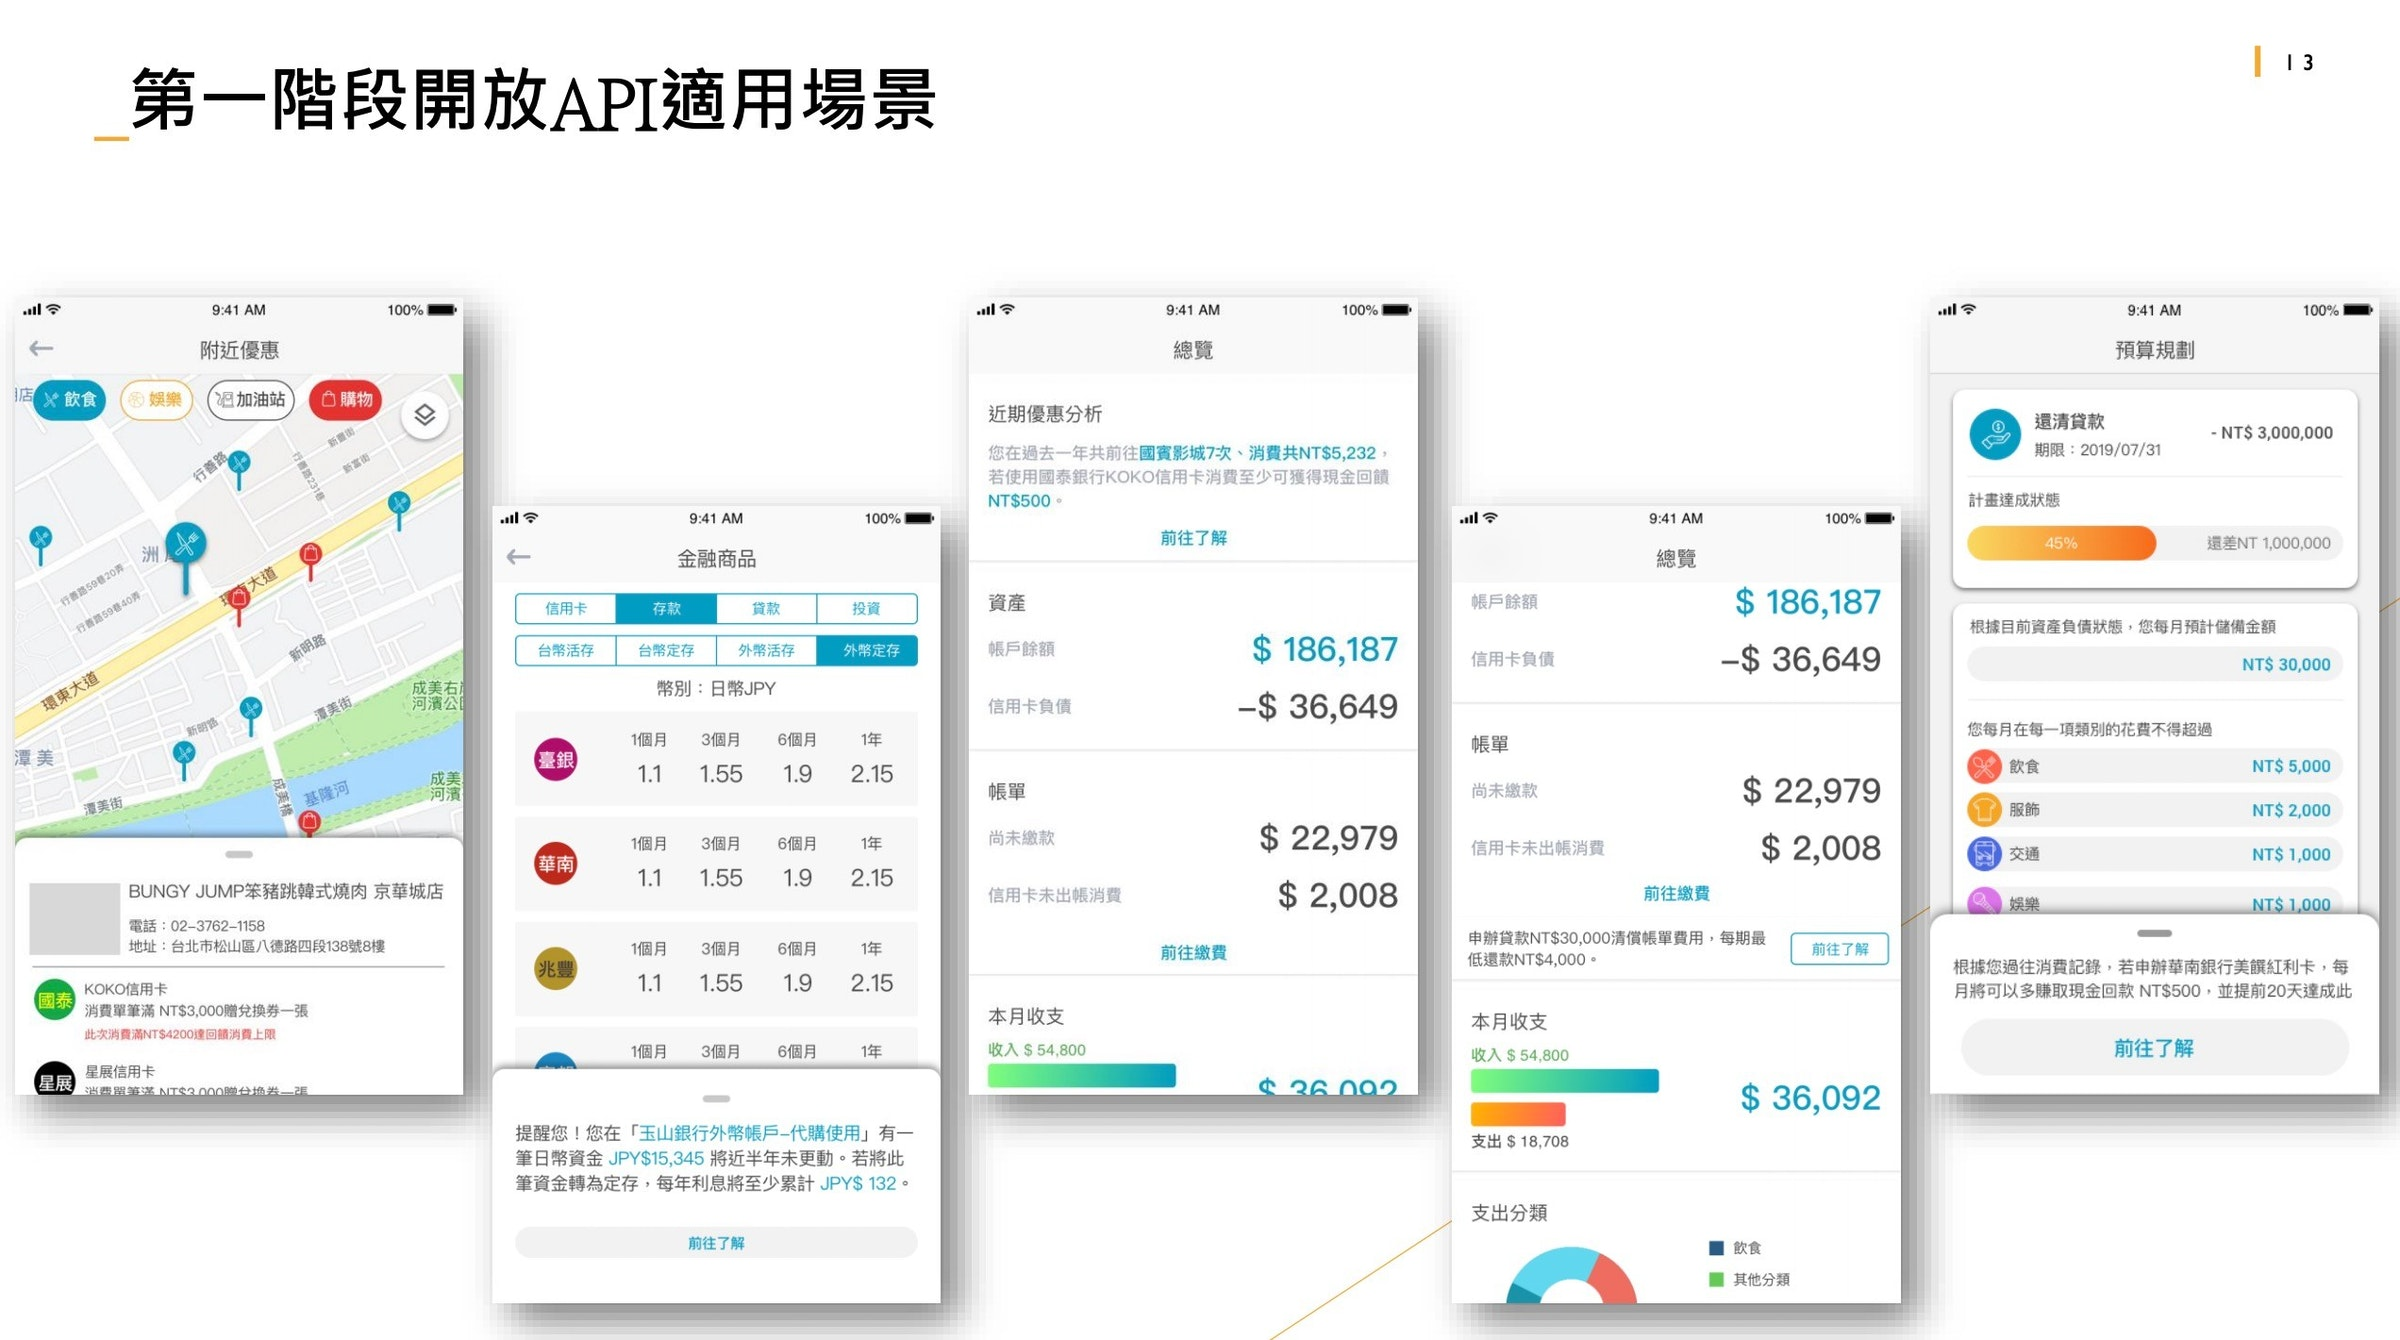 Bank, Open API, Finance, Open banking, Financial institution, Application programming interface, Financial Supervisory Commission, Financial Information Co., Ltd. FISC, 中华民国银行商业同业公会全国联合会, Application software, screenshot, Text, Product, Line, Font, Screenshot, Technology, Electronic device, Computer icon, Web page, Icon